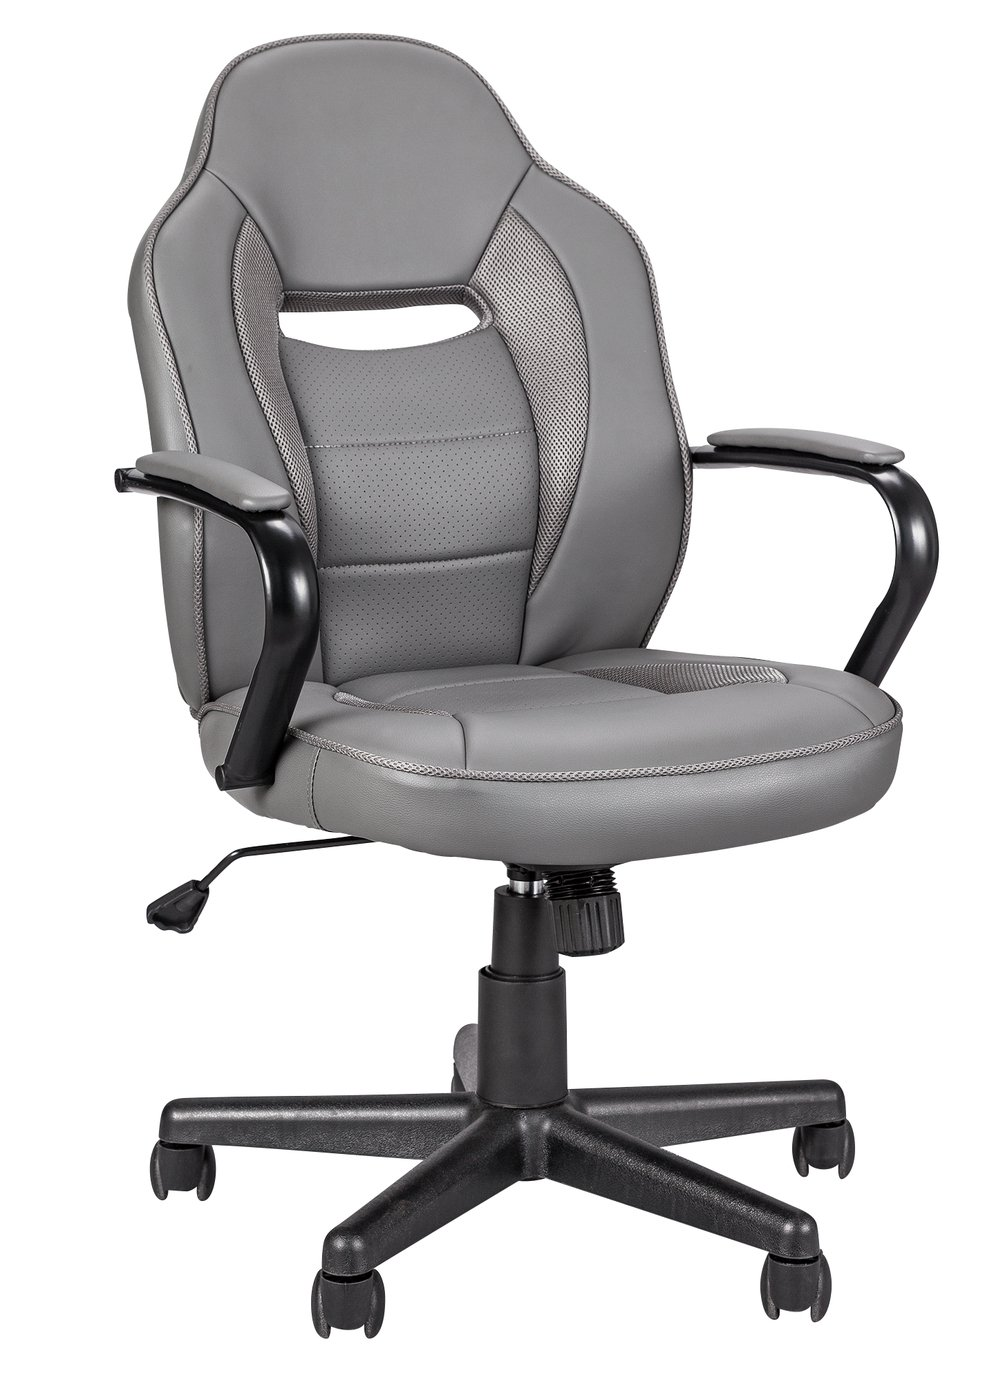 Argos Home Faux Leather Gaming Chair - Grey